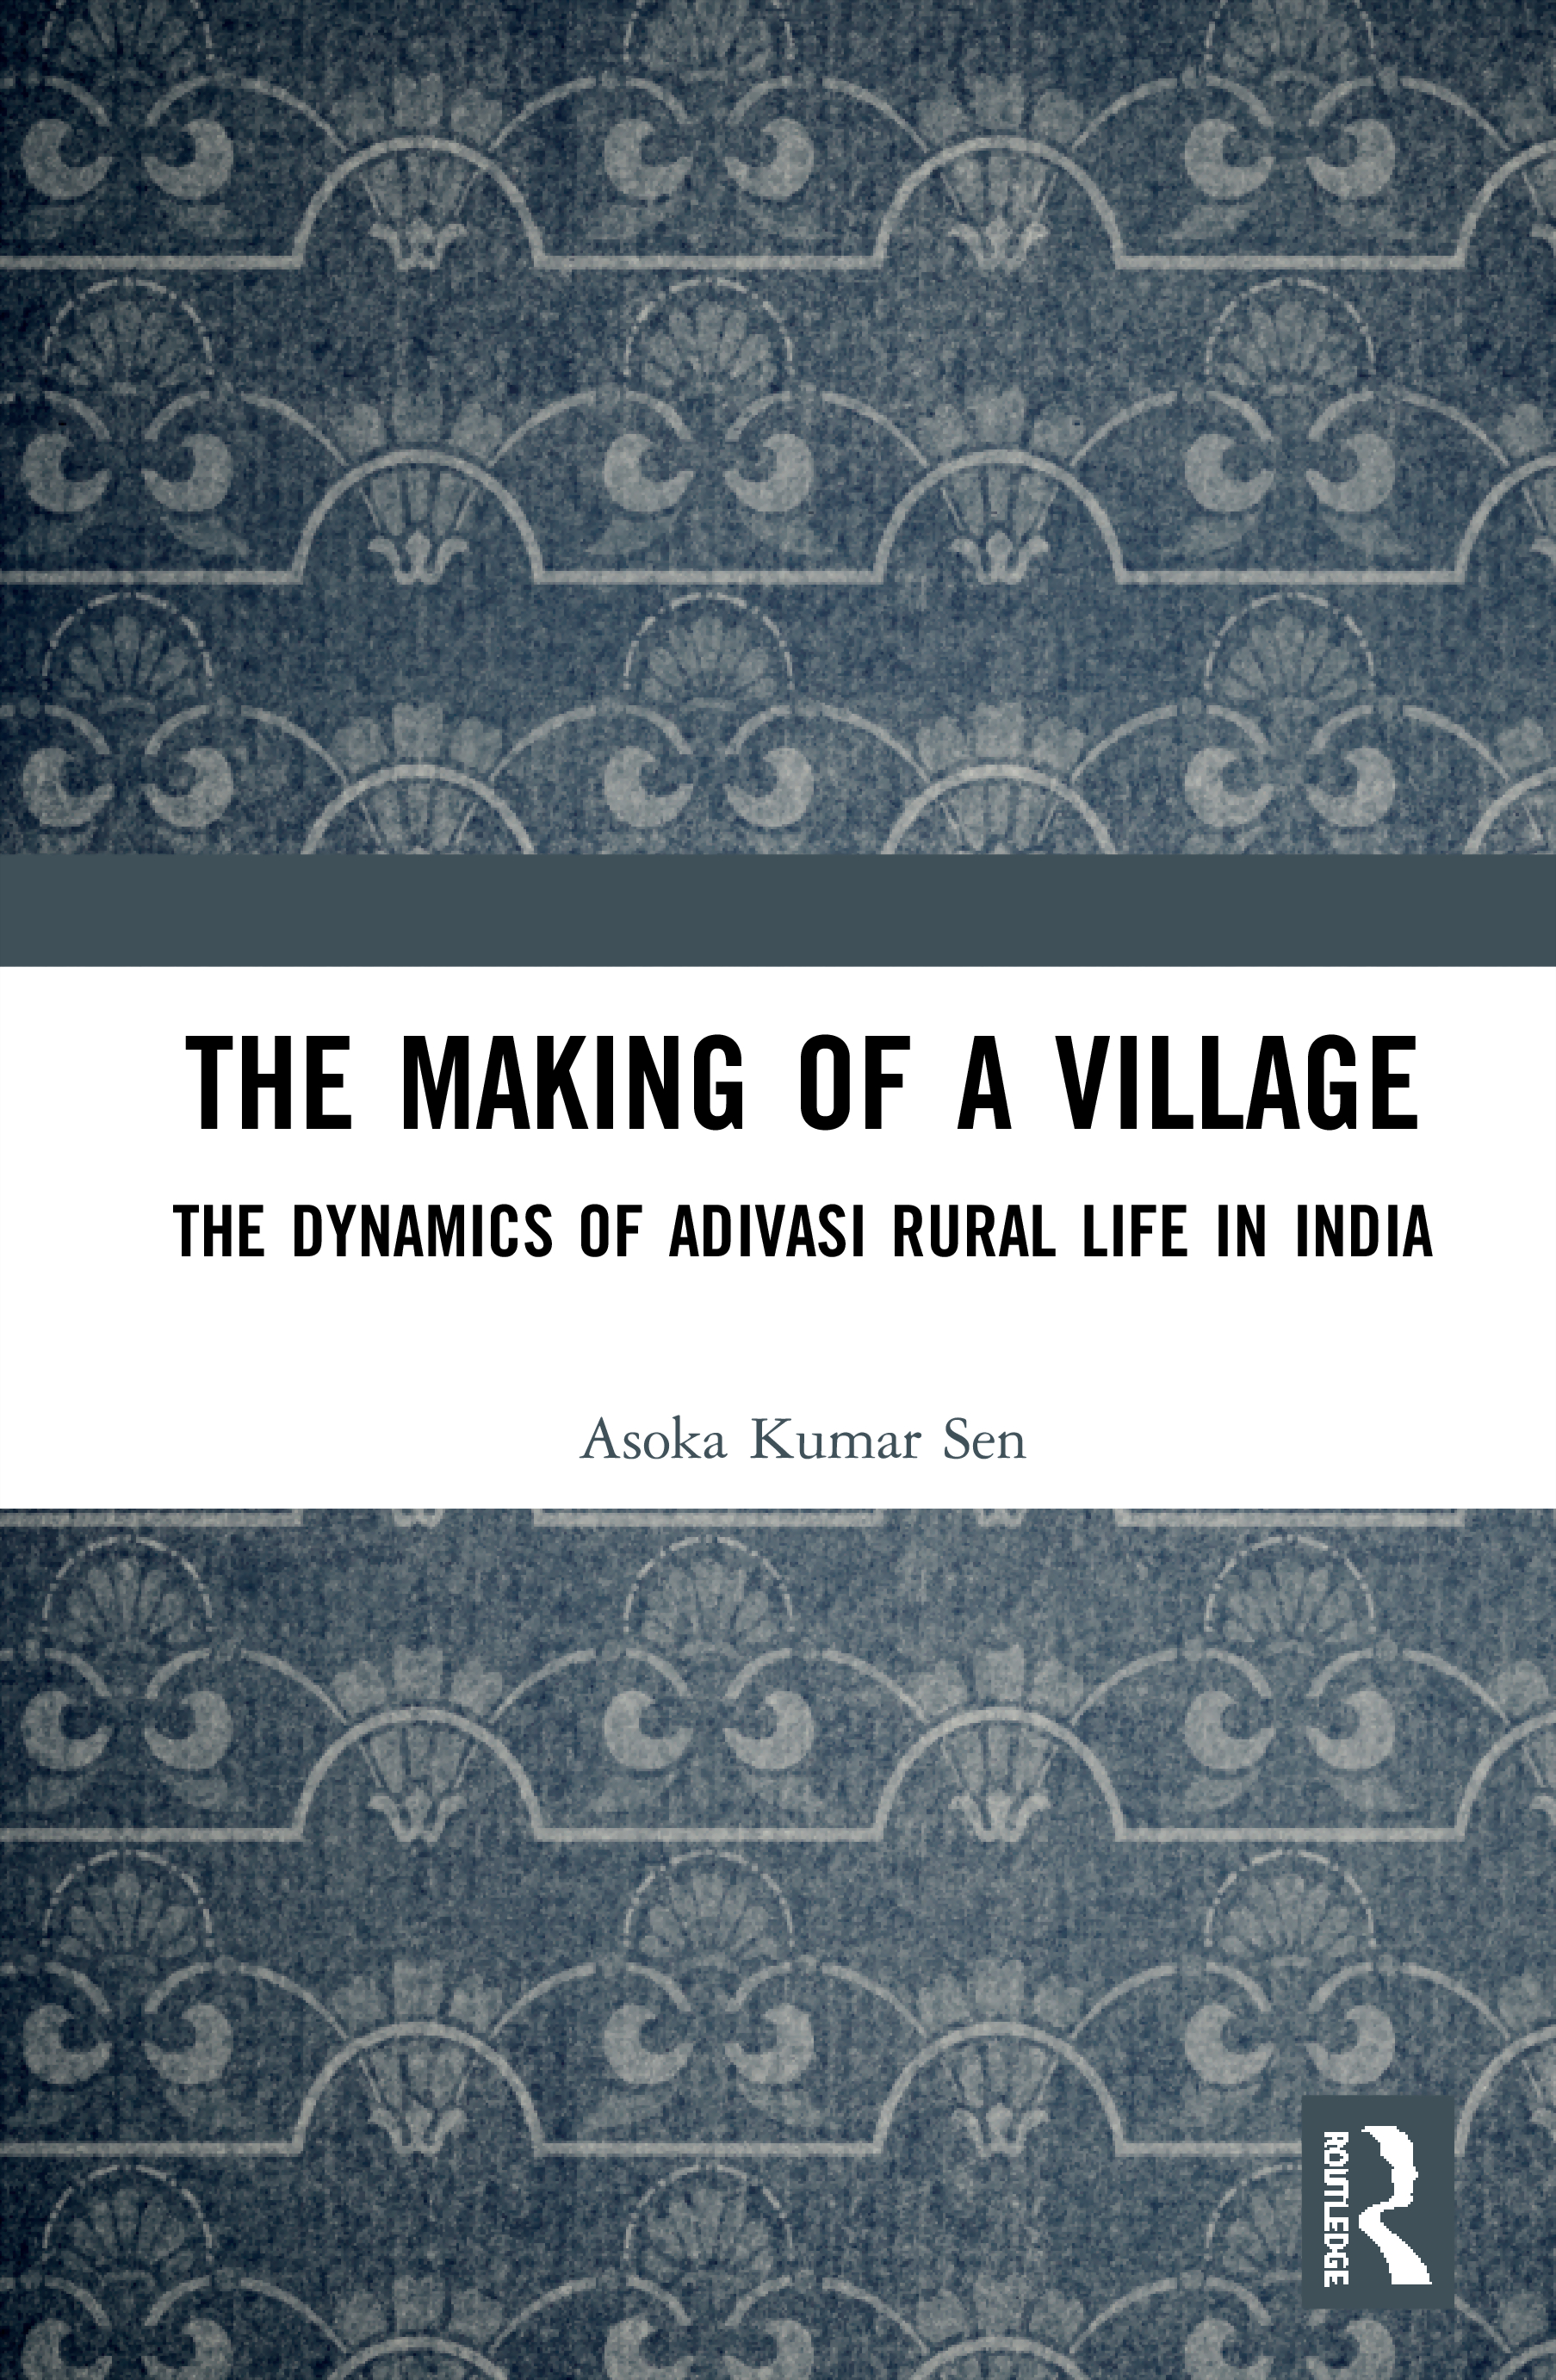 The Making of a Village: The Dynamics of Adivasi Rural Life in India book cover